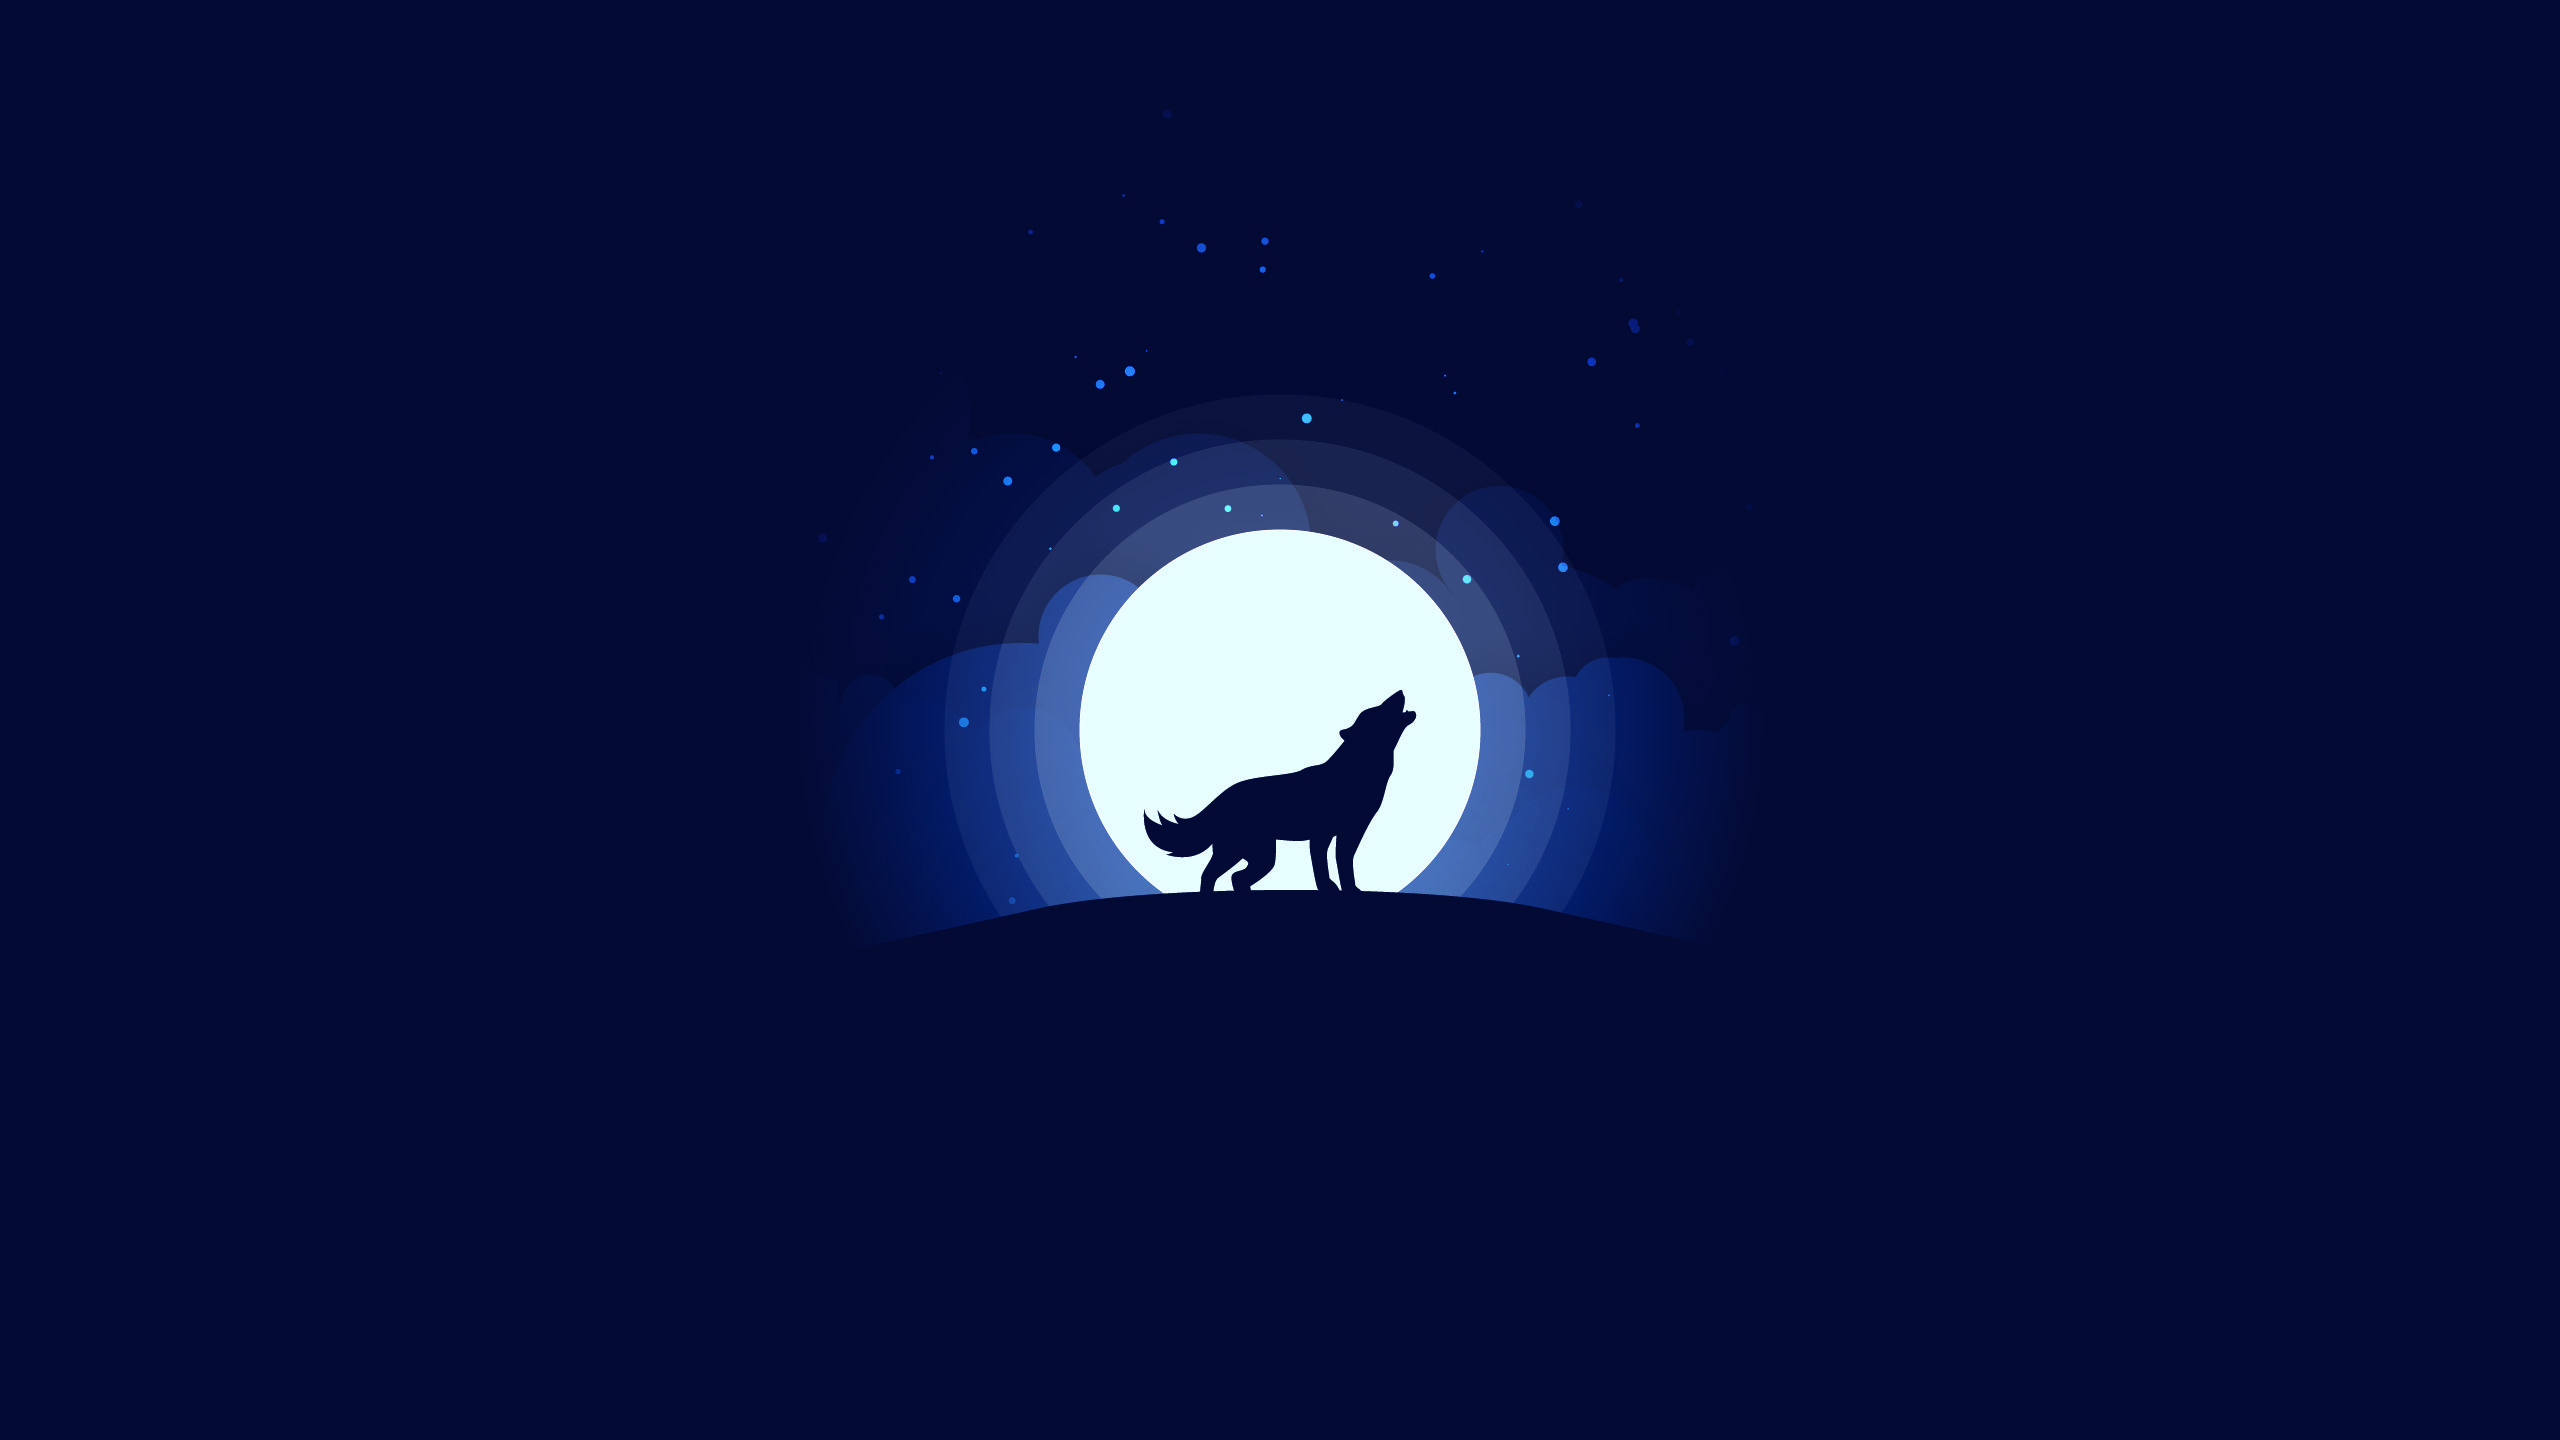 artwork, minimalism, simple background, wolf, Moon, moonlight, clouds, stars, night